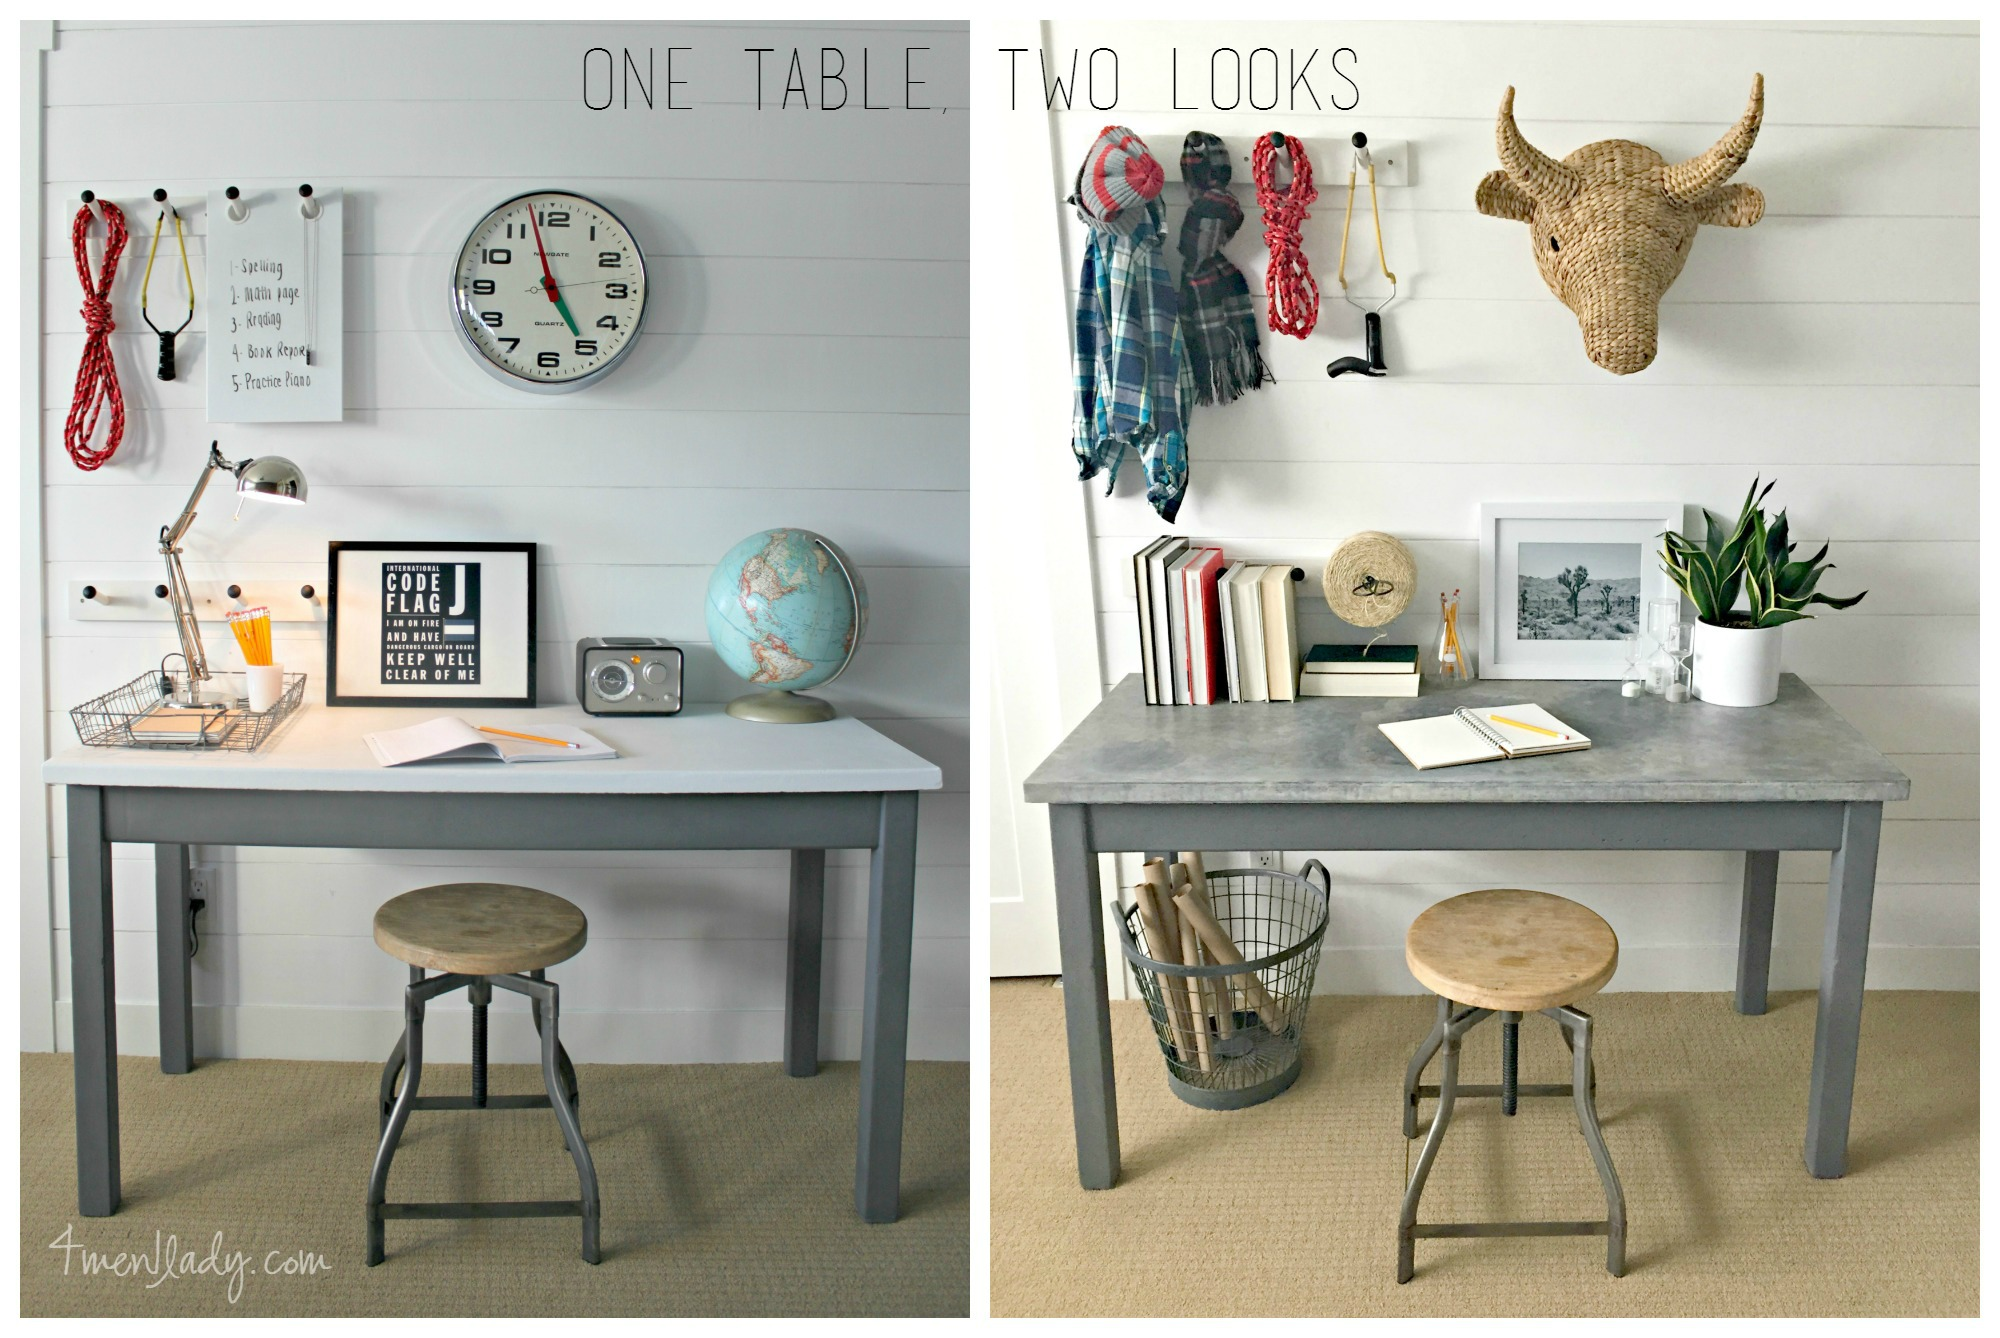 One Table Two Looks